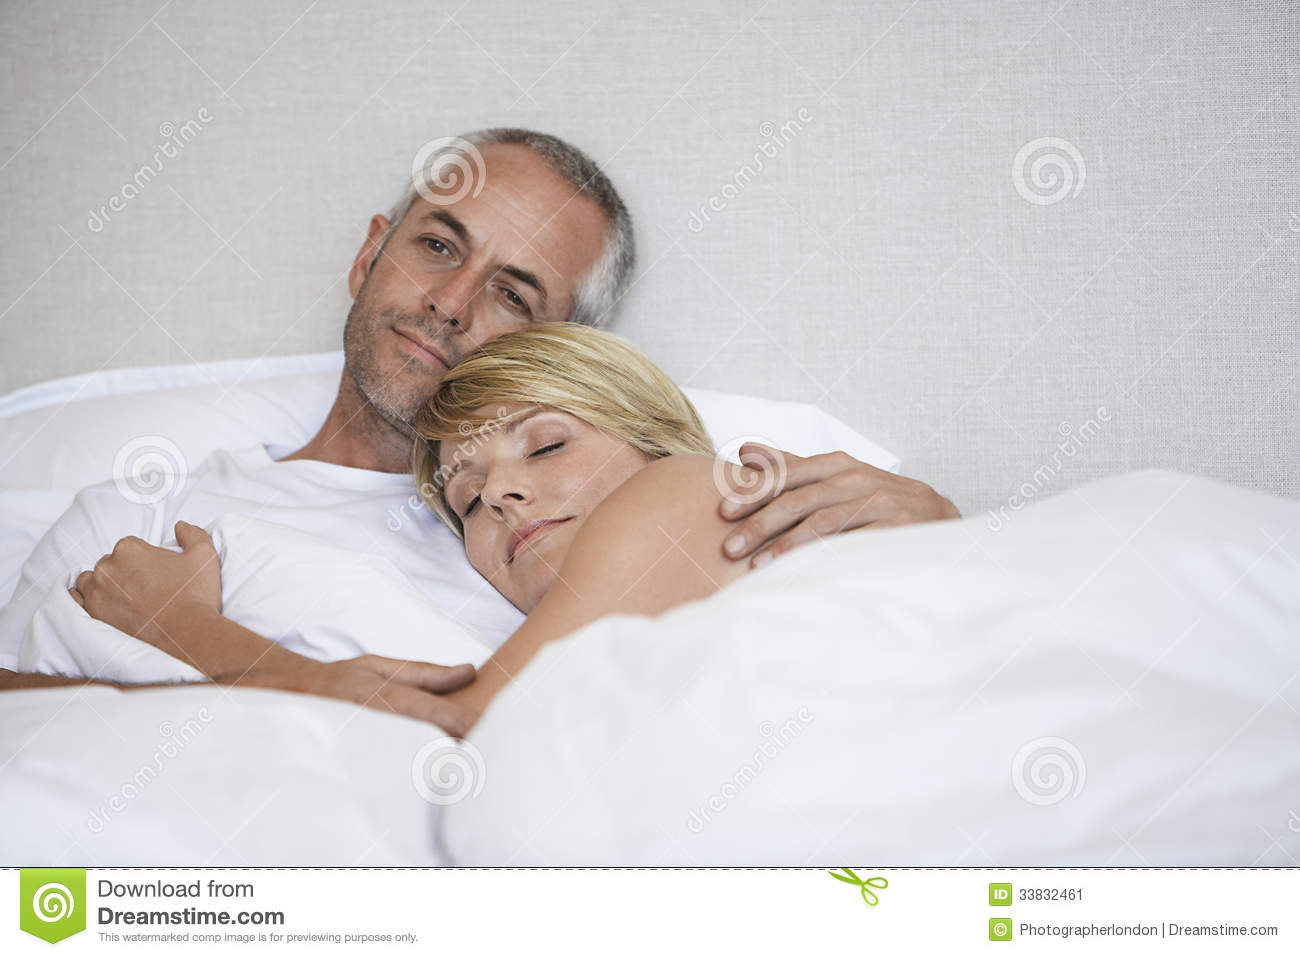 Romantic Couple Relaxing In Bed. Romantic Couple Relaxing In Bed Stock Image   Image  33832461